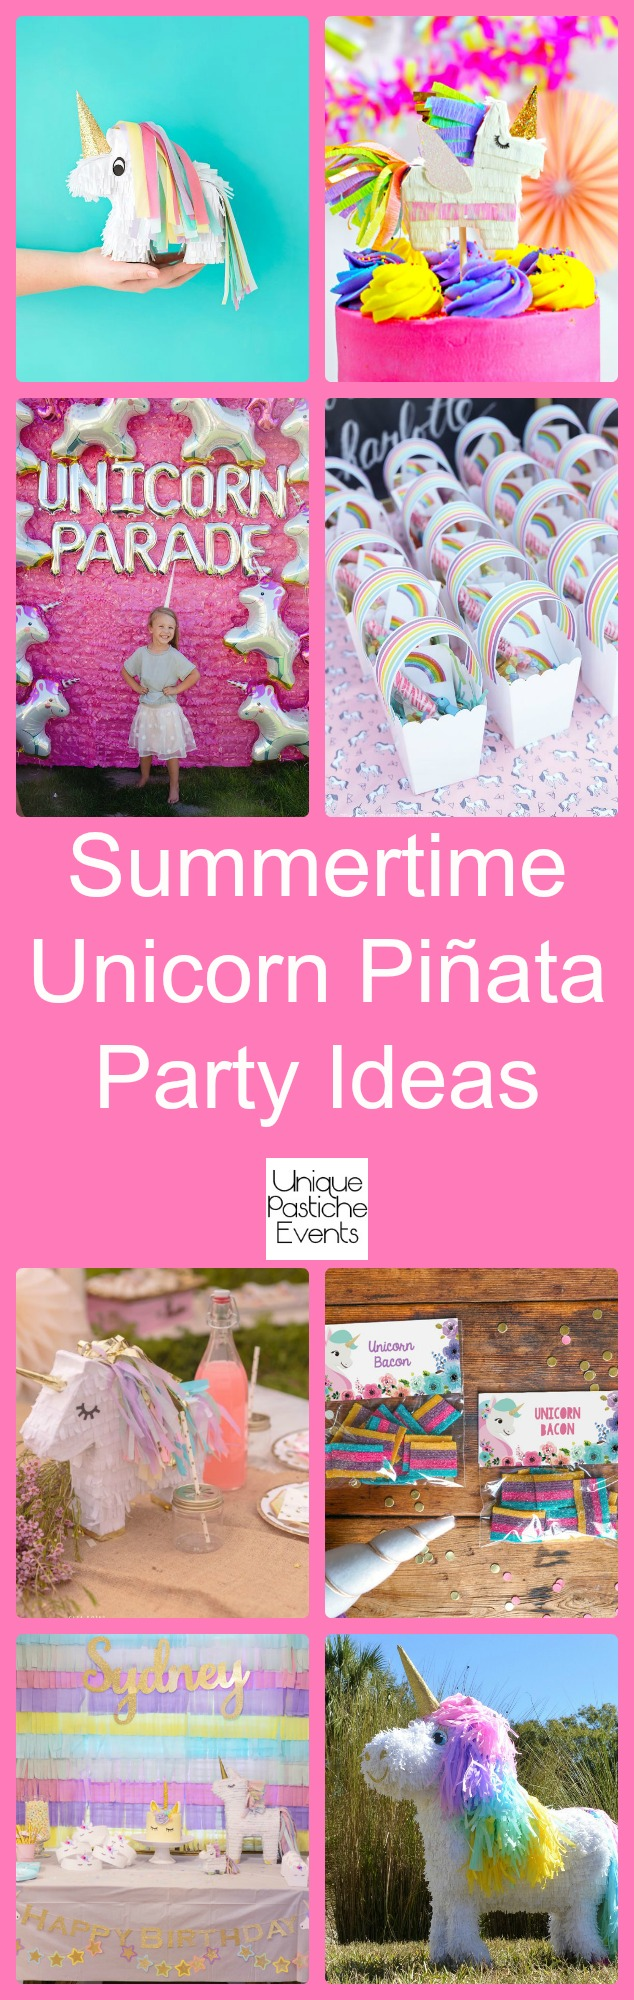 Summertime Unicorn Piñata Party